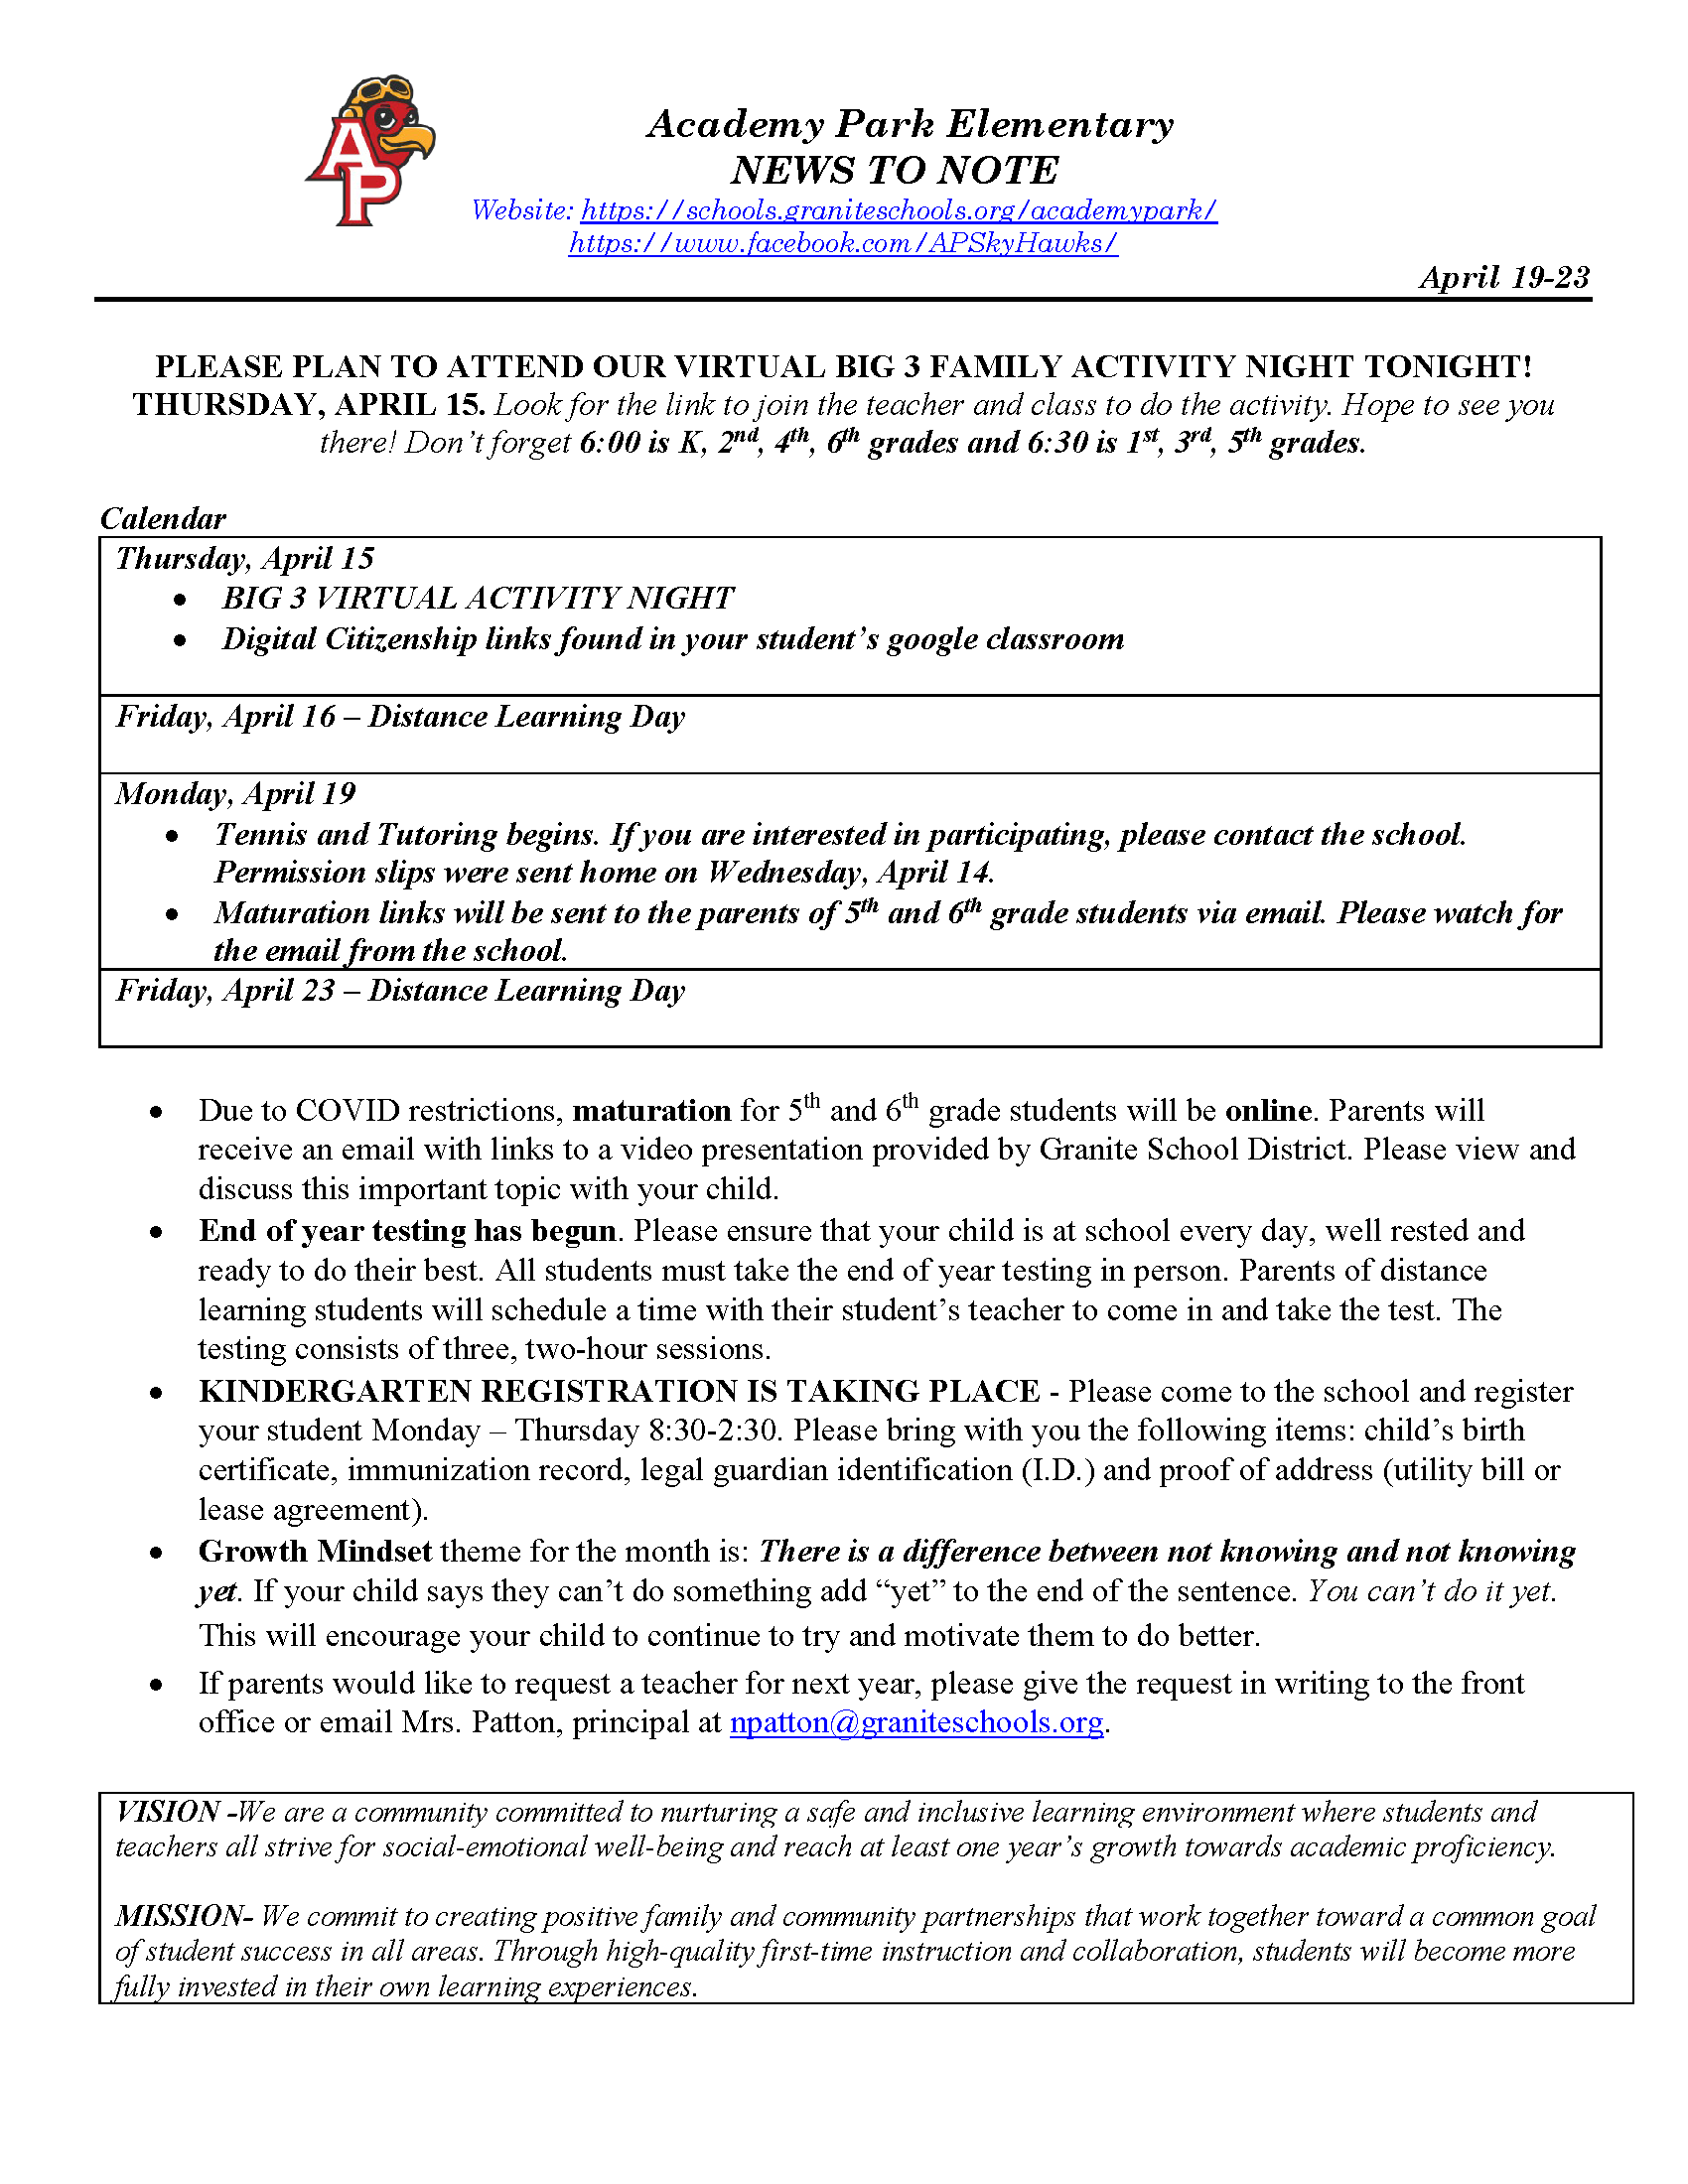 Image is of Weekly Newsletter- It includes information on End of Year Testing, 5th and 6th Grade maturation and Kindergarten Registration. It is Linked to a PDF copy in both English and Spanish